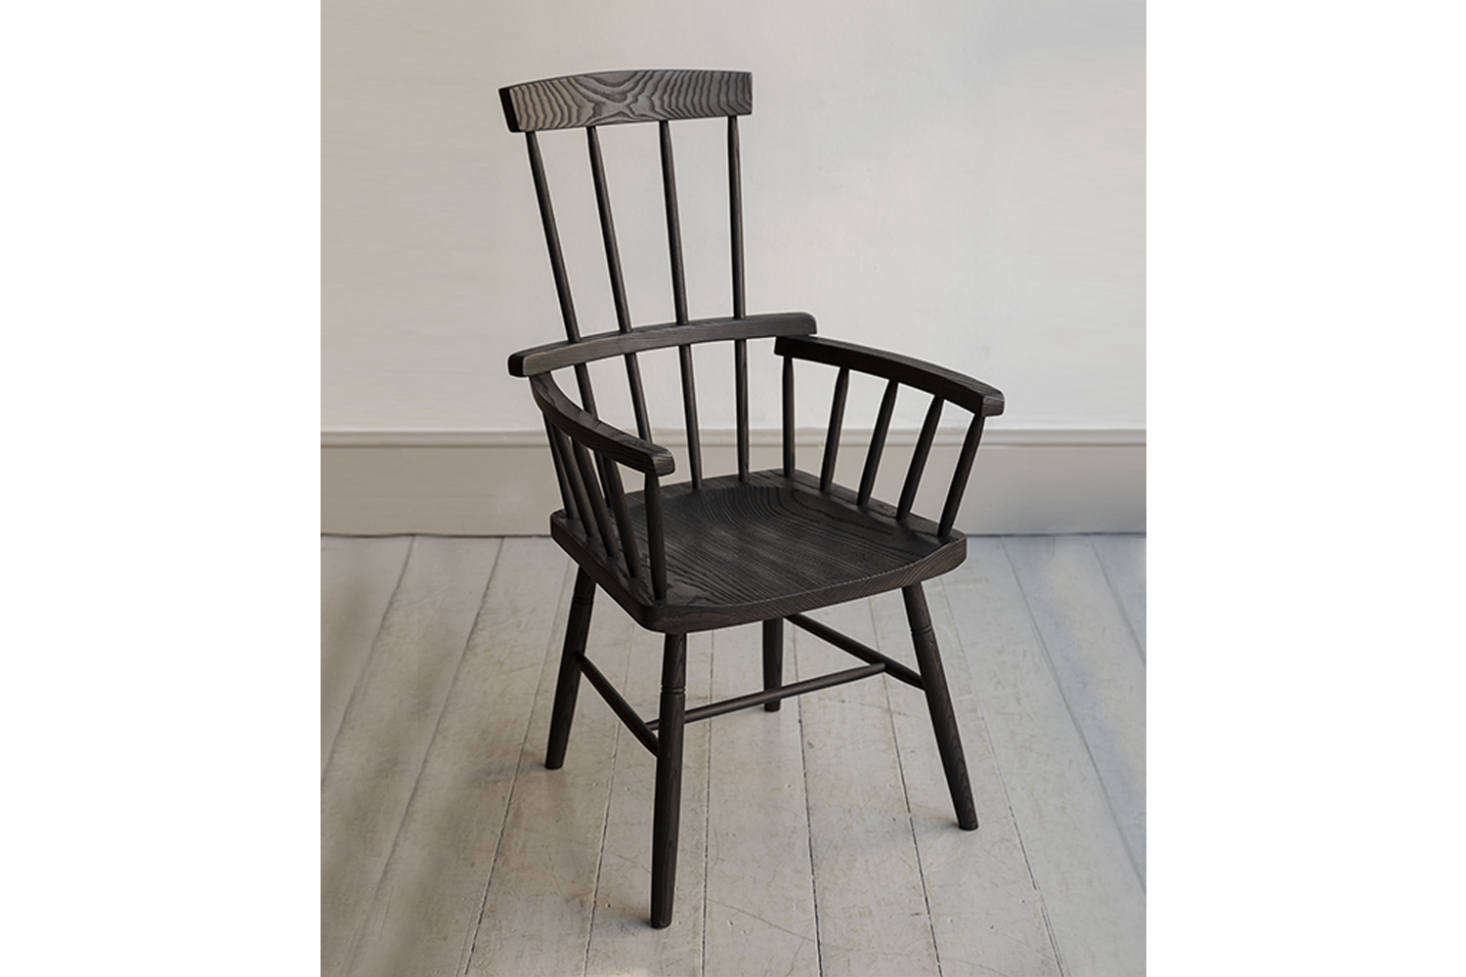 Similar to the antique Windsor style chair is the Howe Charred Comb Back Windsor Chair in blackened ash.Contact for price and ordering information. For more ideas see our post Easy Pieces: The Windsor Chair Revisited.